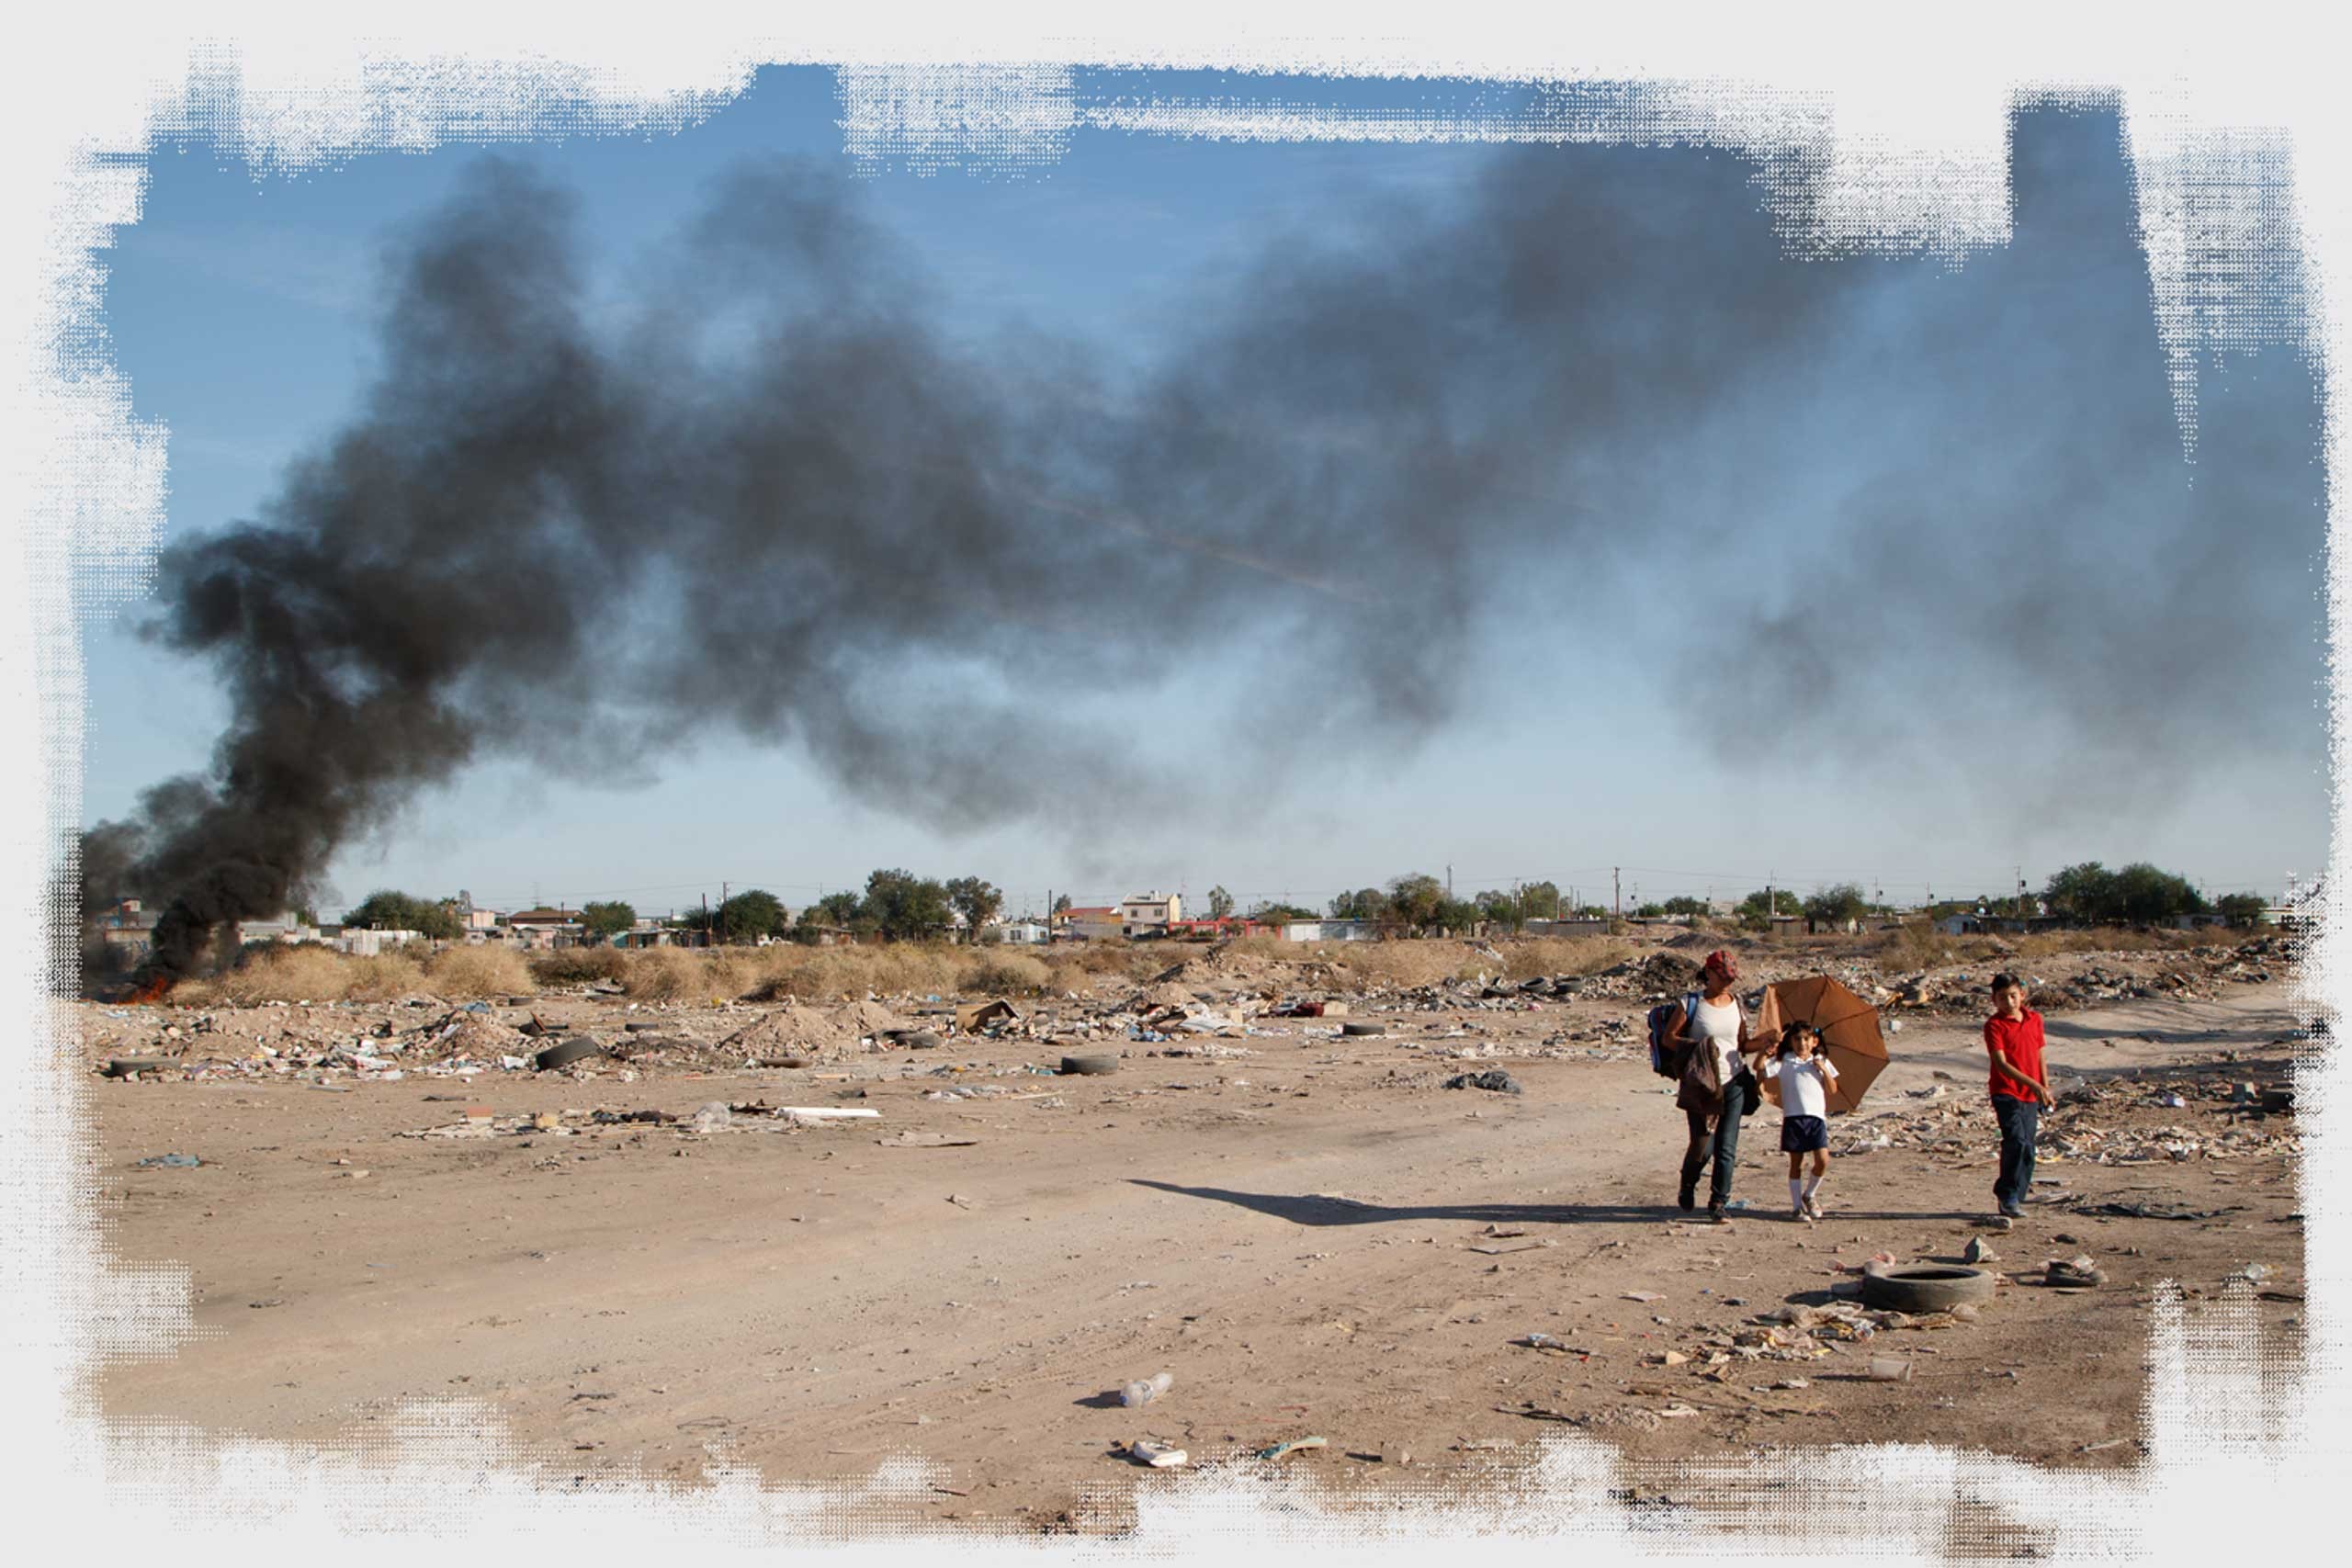 A woman walks two children home from school through a vacant lot in Mexicali, passing a heap of burning tires and trash.